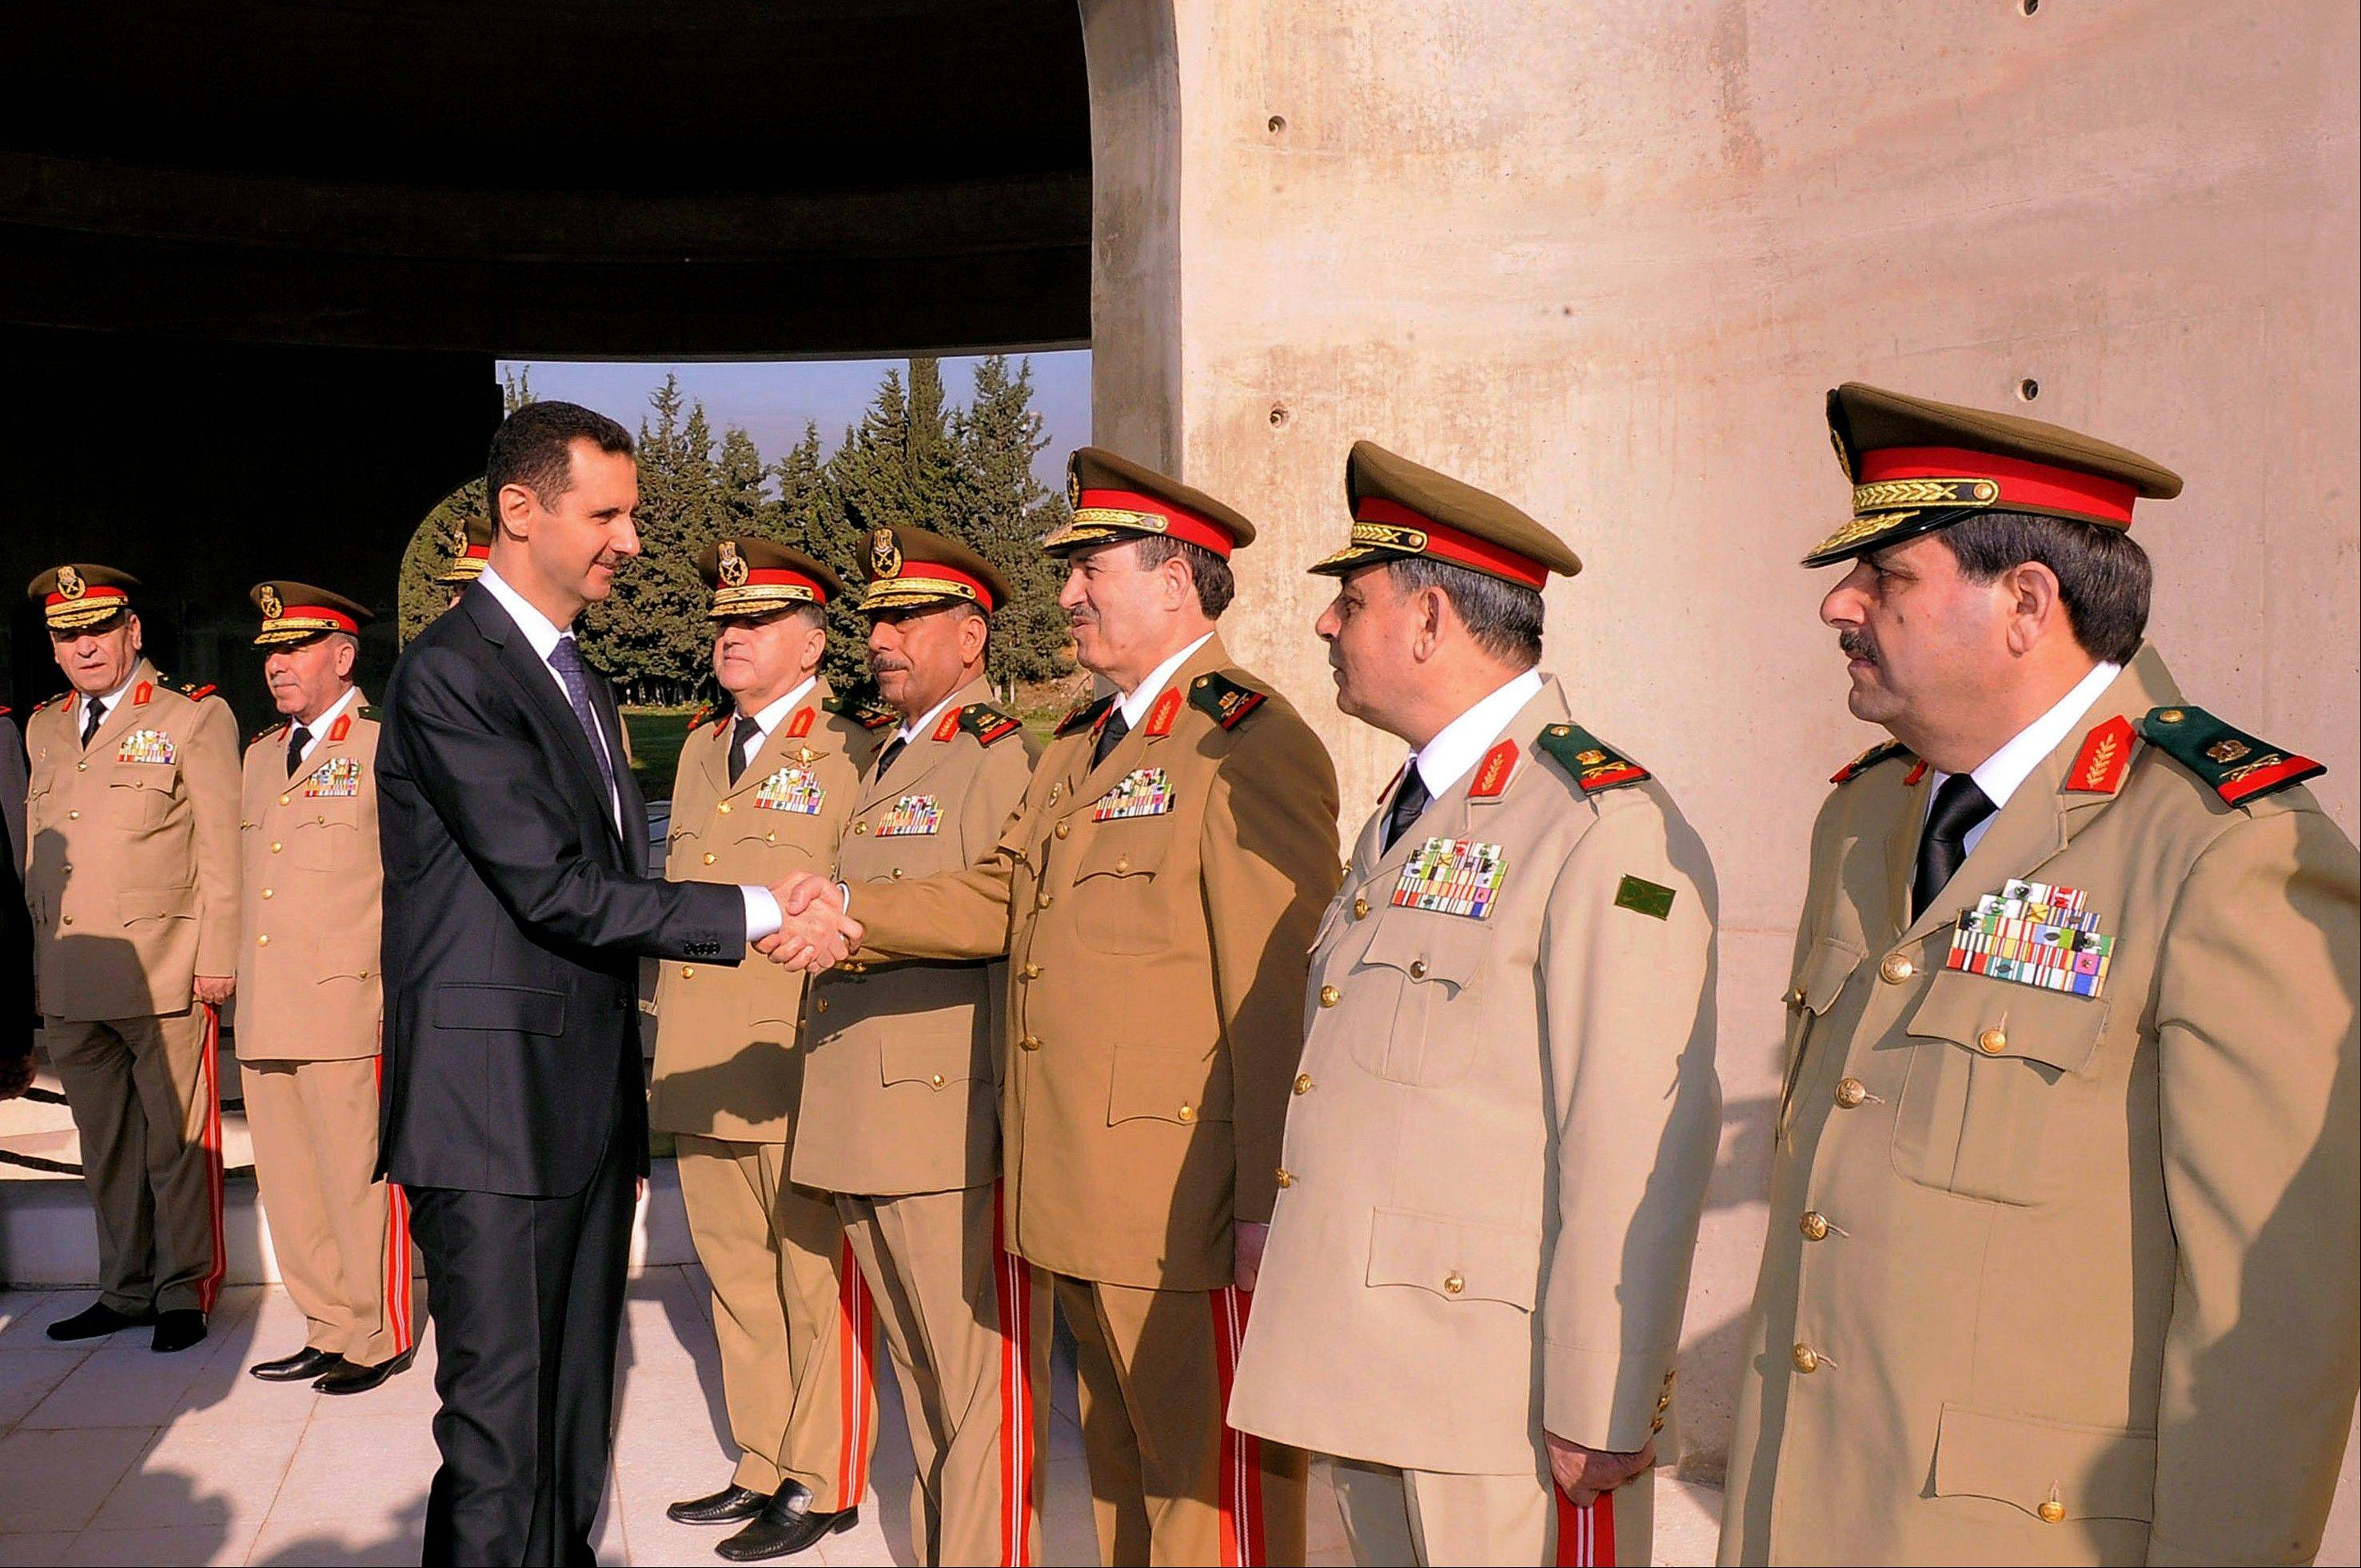 Syrian President Bashar Assad greets military officers Saturday in a ceremony marking the anniversary of the 1973 Arab-Israeli war in Damascus, Syria.